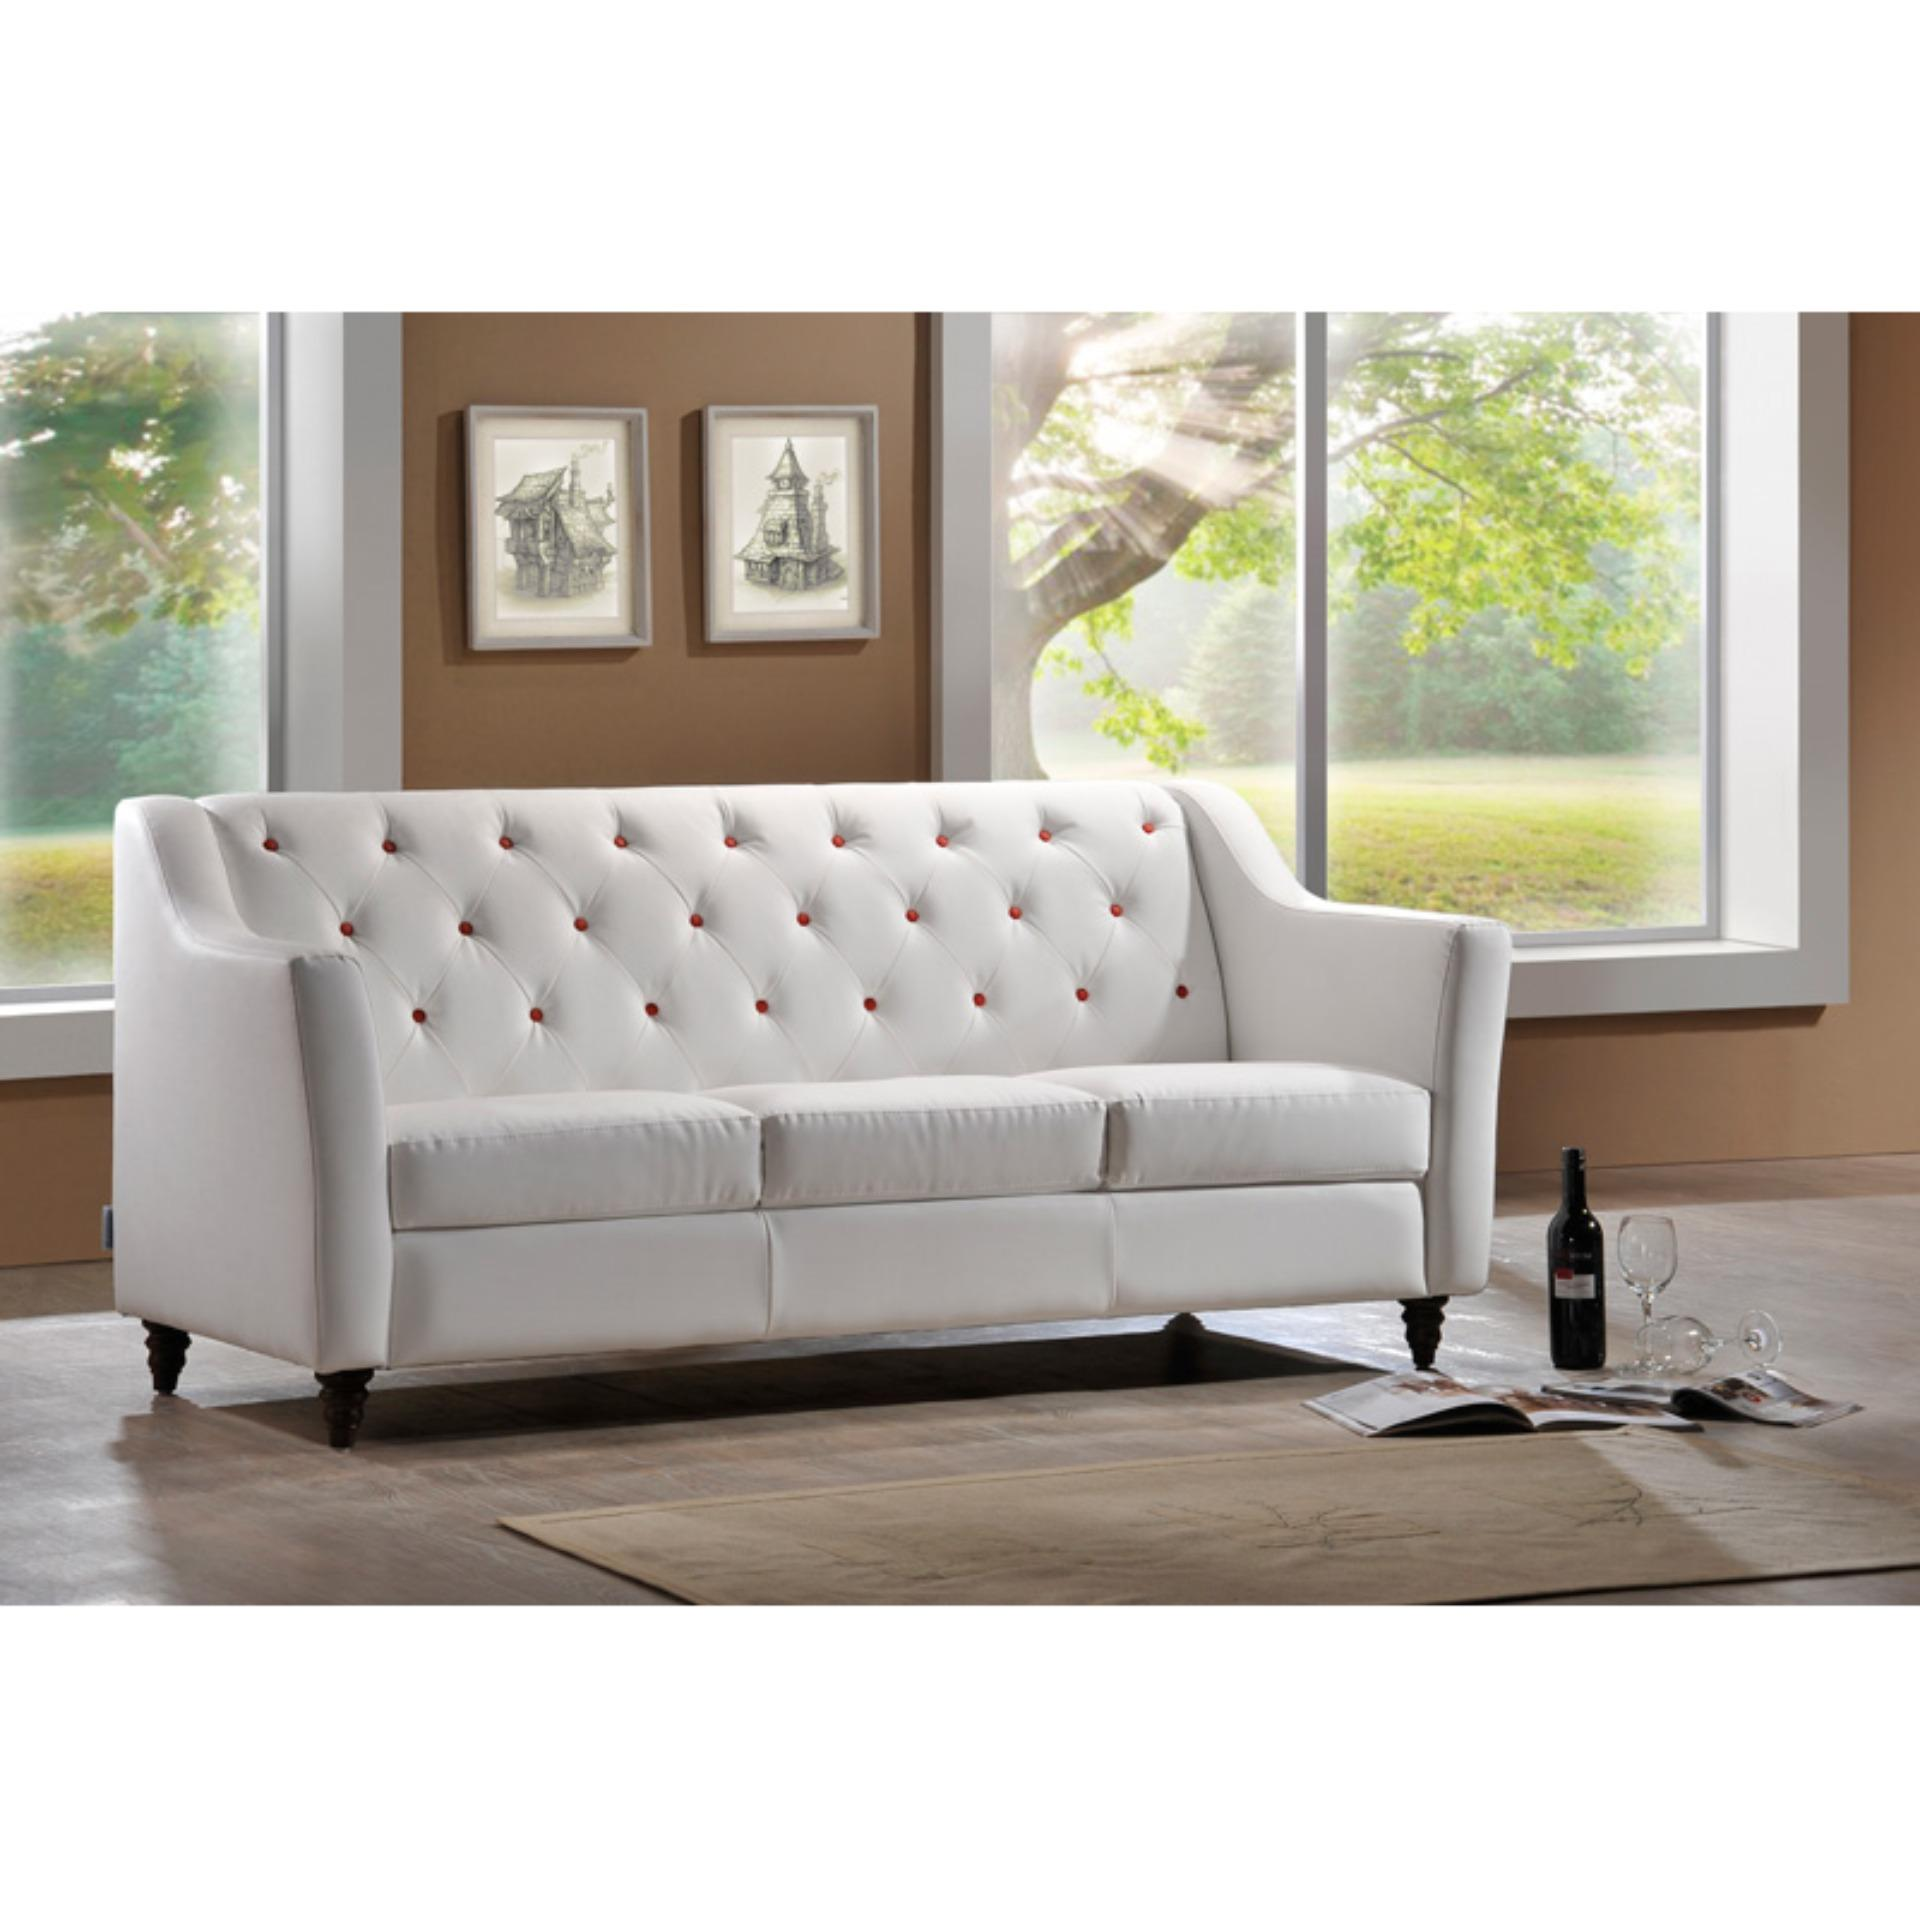 Univonna Majestic 3 Seater Sofa * Local made * Free delivery